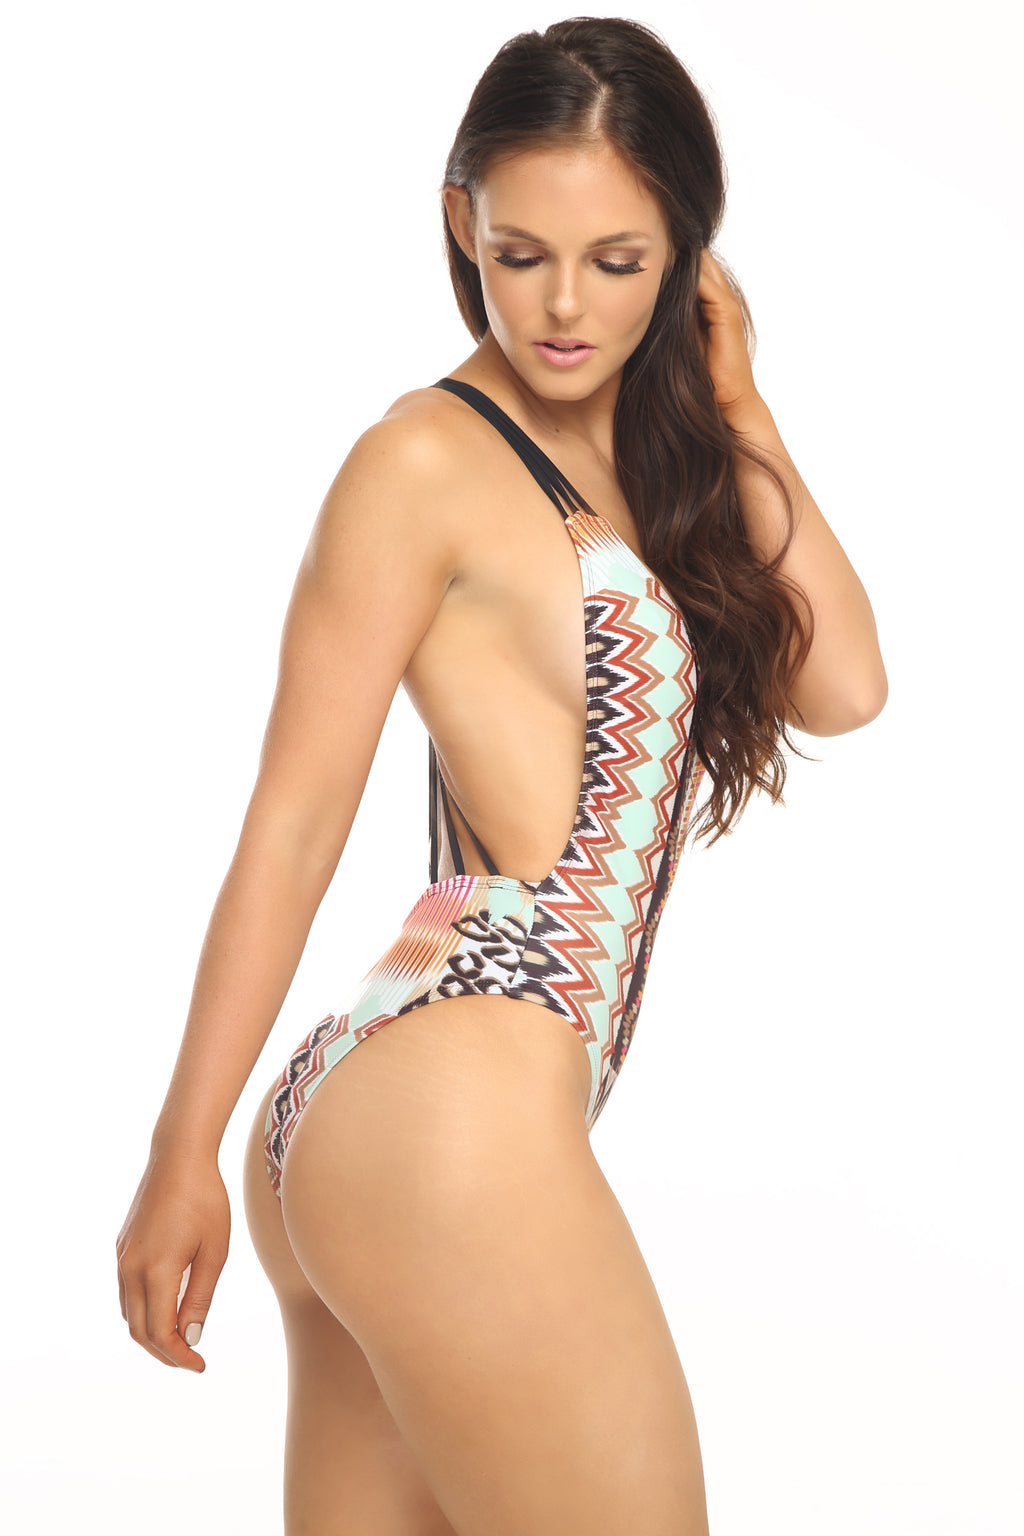 AUDREY ONE PIECE - TRIBAL